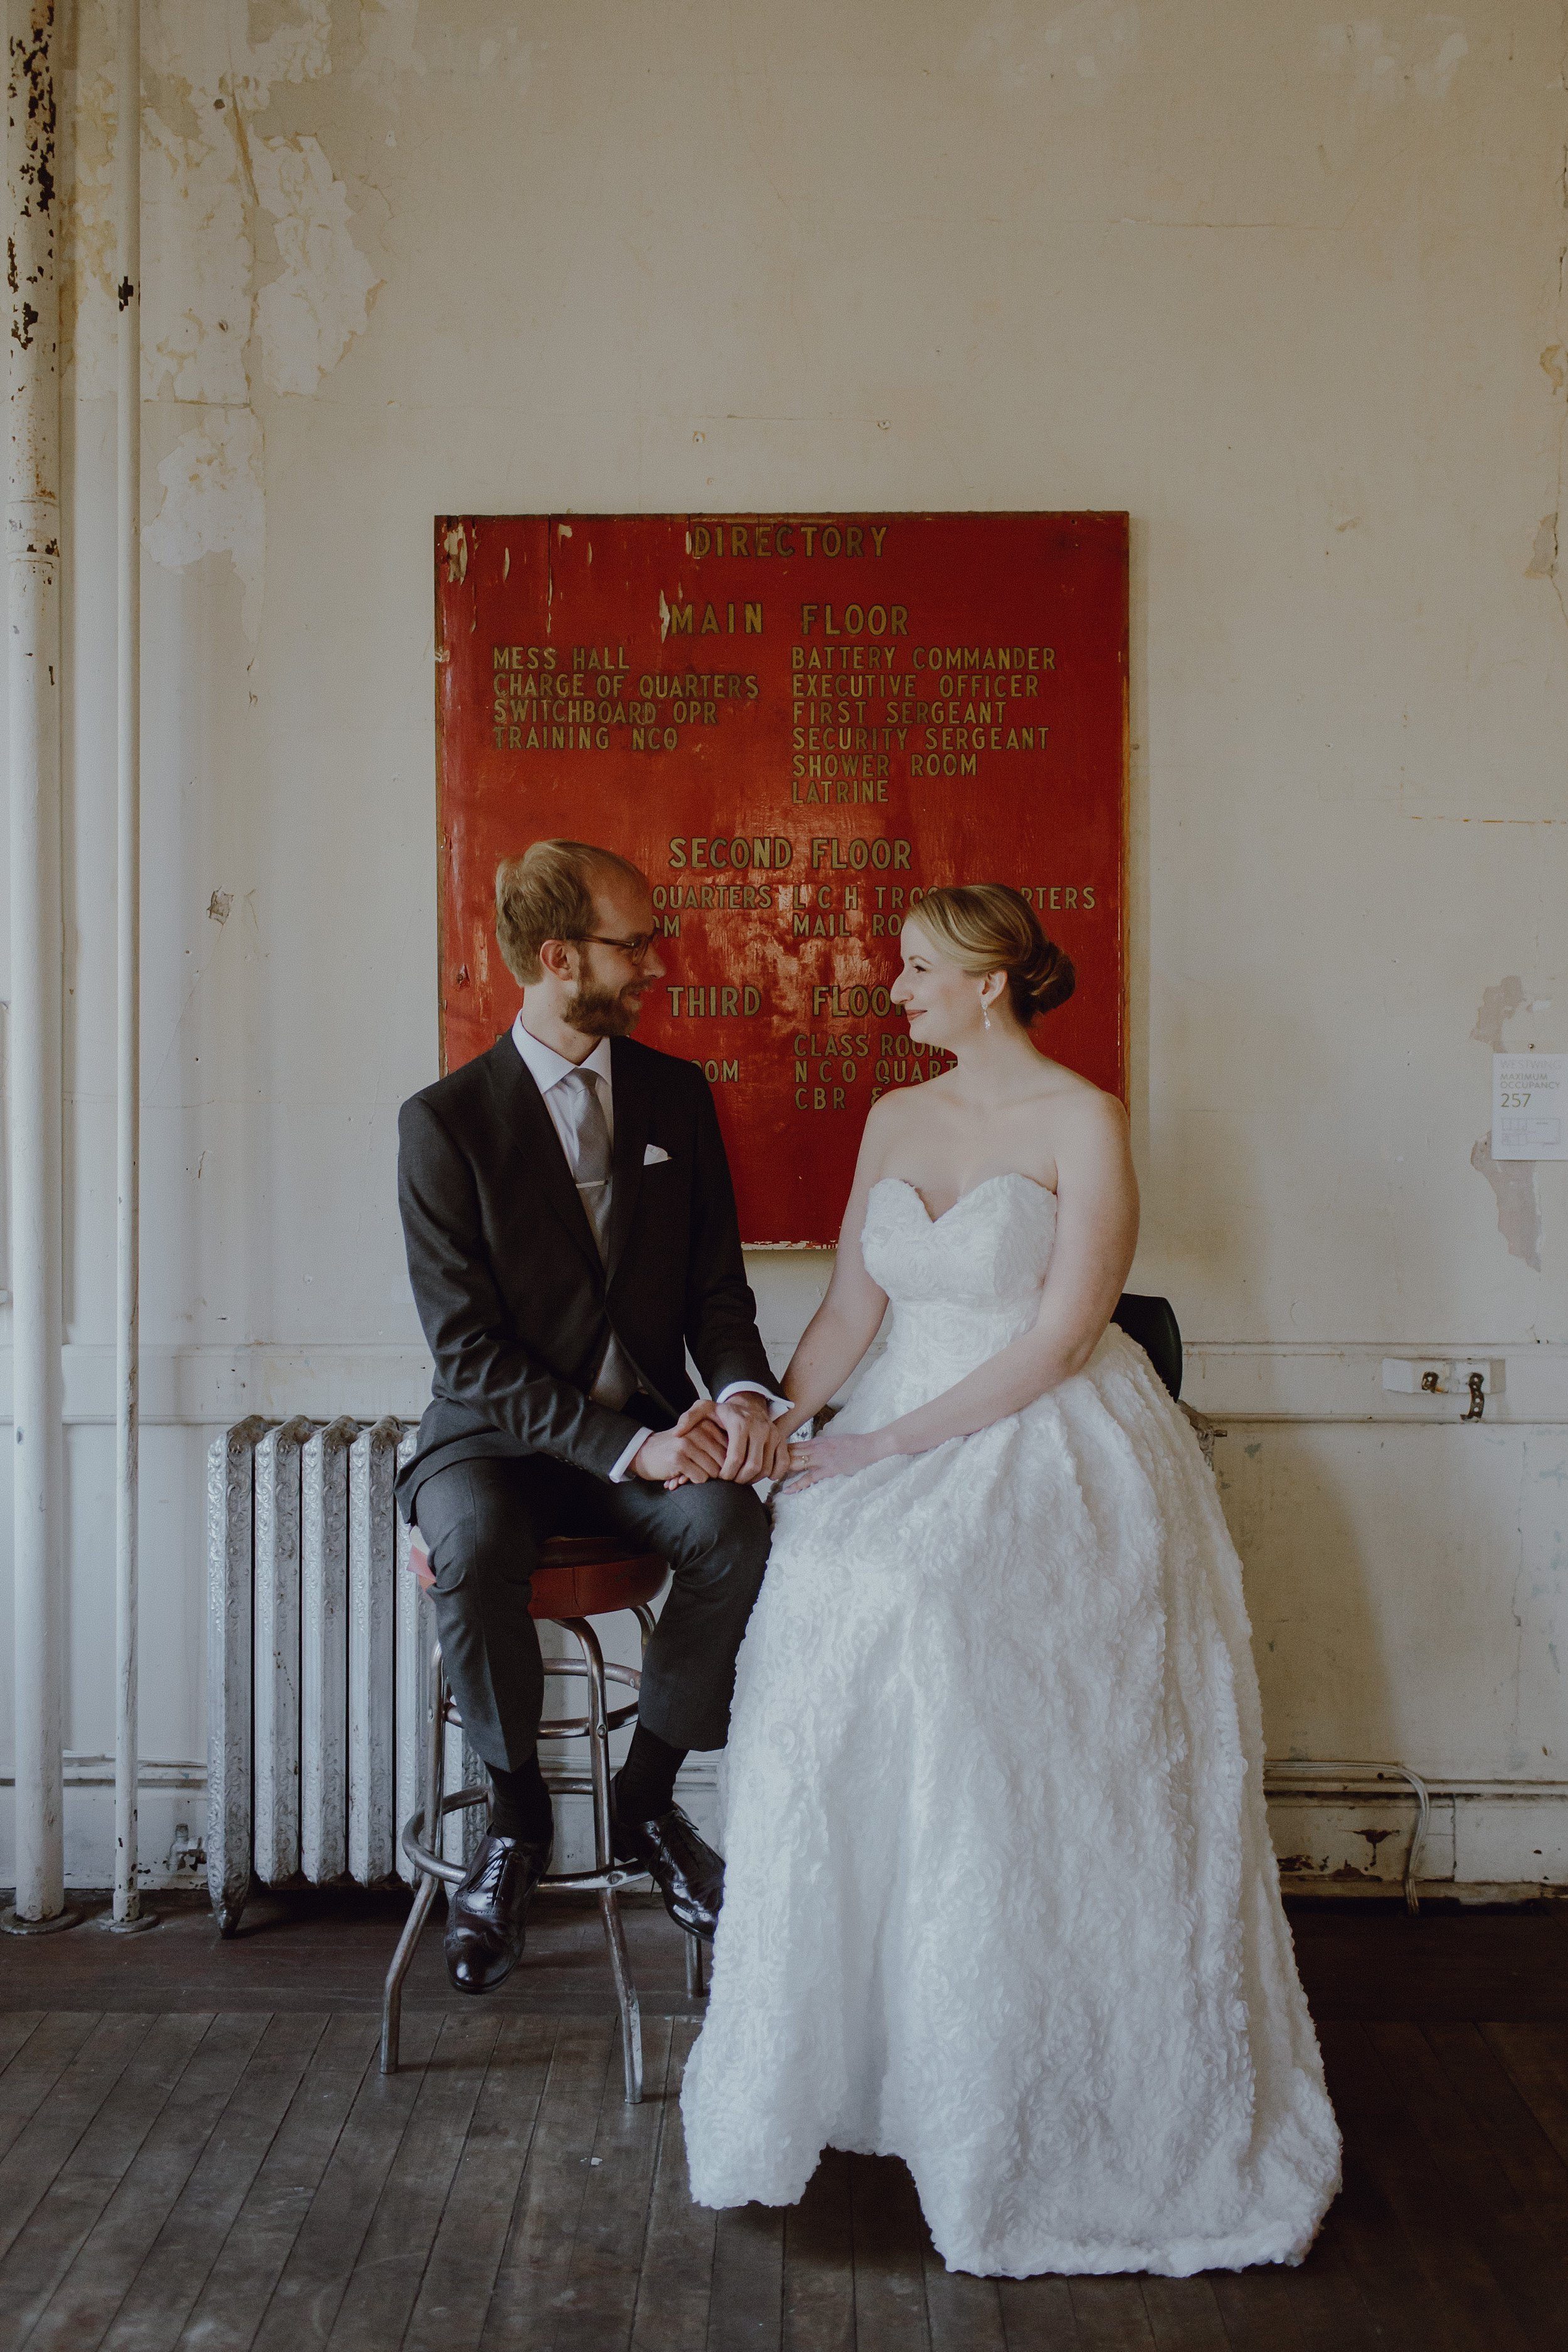 A bride and groom photo at their wedding at Headlands Center for the Arts